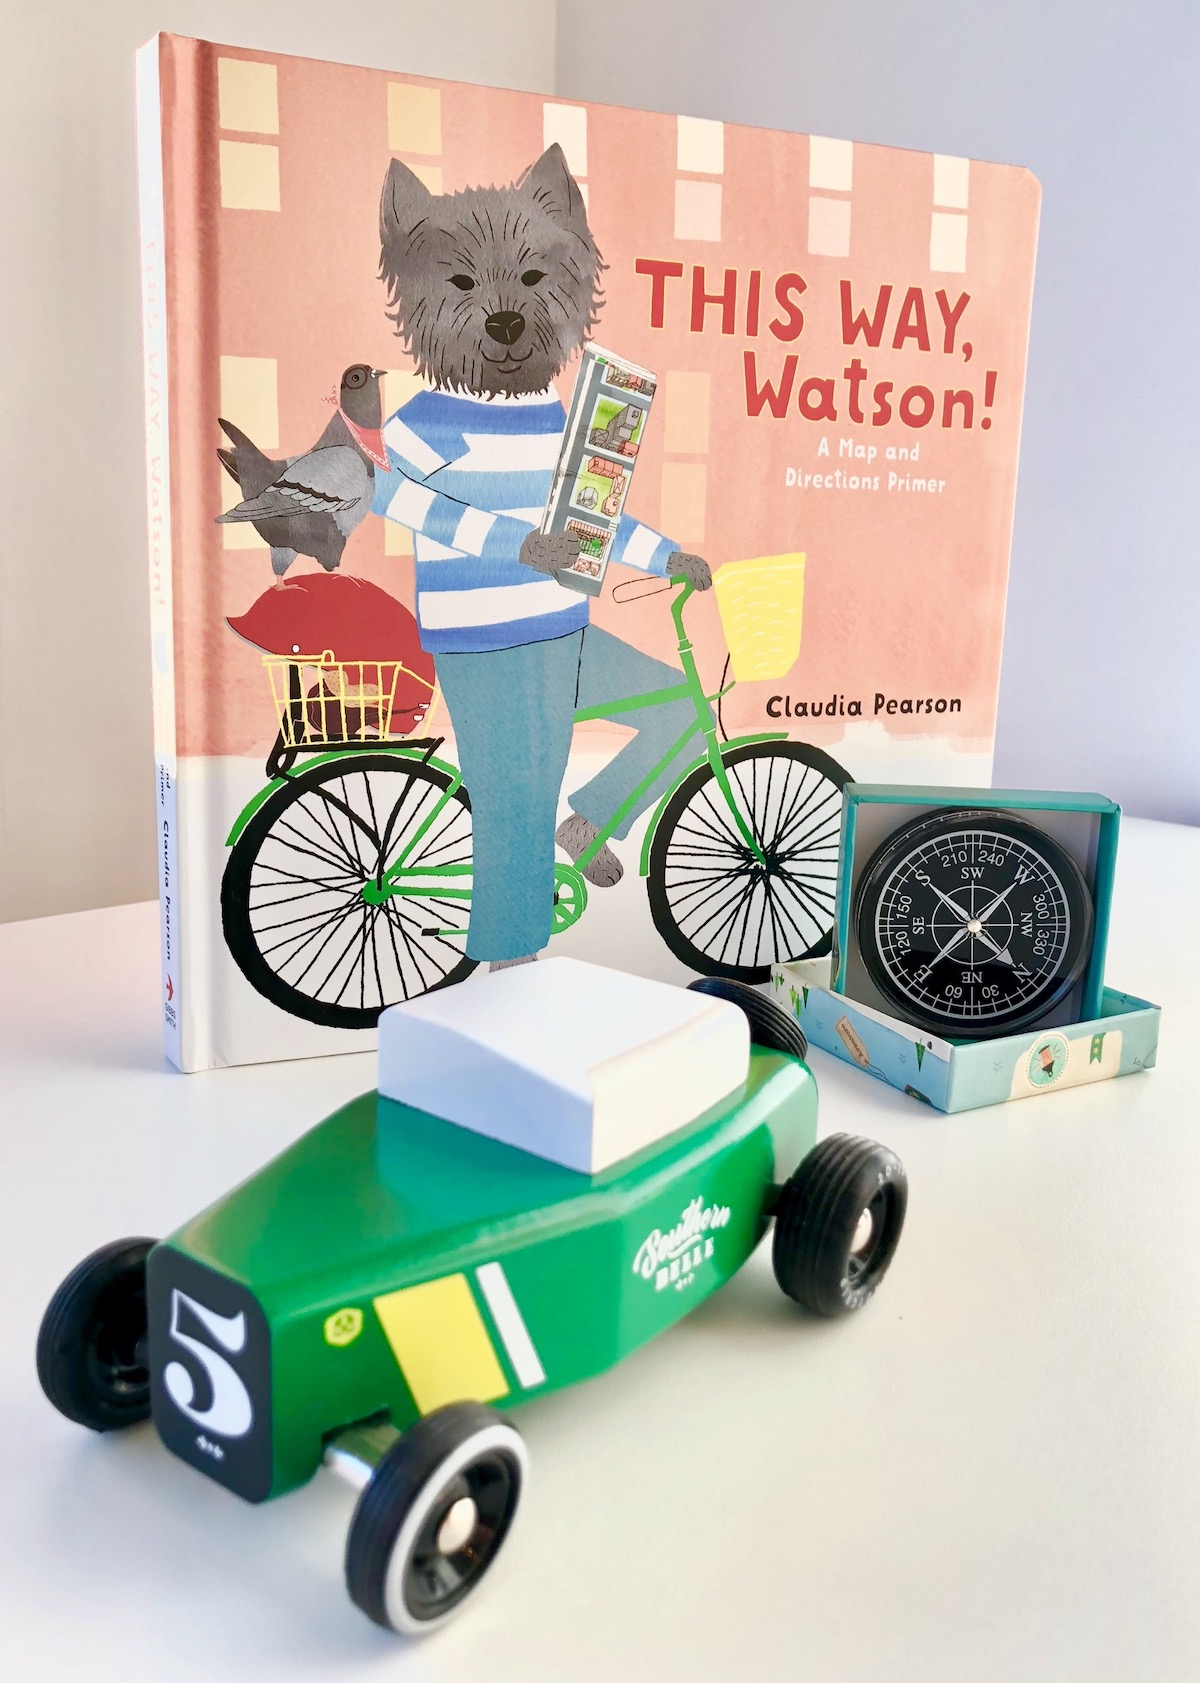 For kids on the go: - From Tiny, the sweet children's boutique that's new to Ninth Street:On-the-go gifts from Tiny for your little roadtripper! This Way Watson by Claudia Pearson (a map and directions primer!), Explorers Compass from Moulin Roty, and the Southern Belle wooden race car from Candylab. Great for nieces, nephews, and your own kiddos.